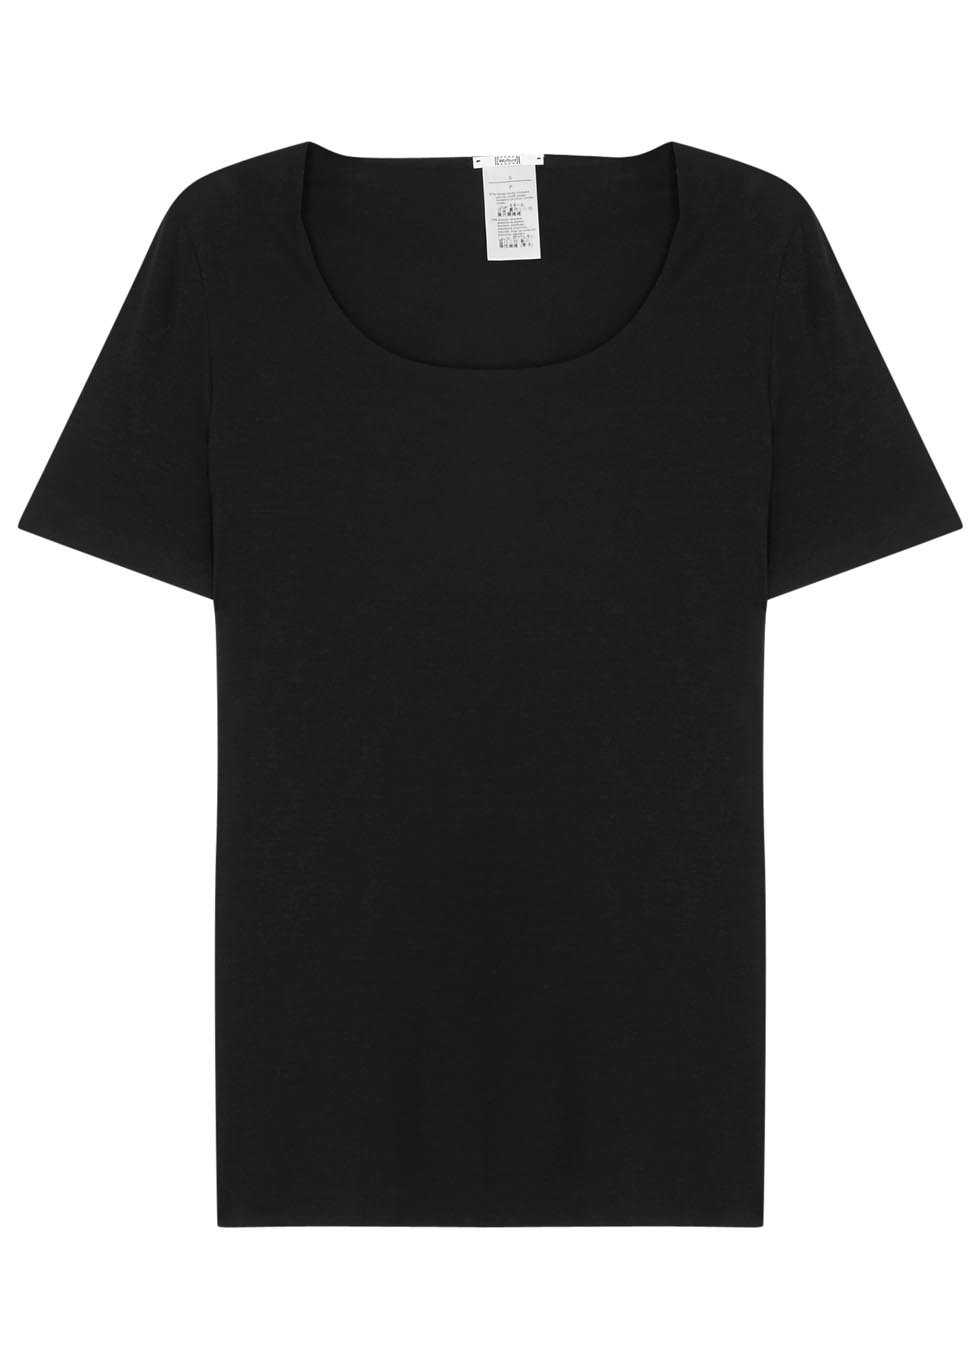 Pure Shirt Black Jersey T Shirt - neckline: round neck; pattern: plain; style: t-shirt; predominant colour: black; occasions: casual; length: standard; fibres: polyester/polyamide - stretch; fit: body skimming; sleeve length: short sleeve; sleeve style: standard; pattern type: fabric; texture group: jersey - stretchy/drapey; season: s/s 2016; wardrobe: basic